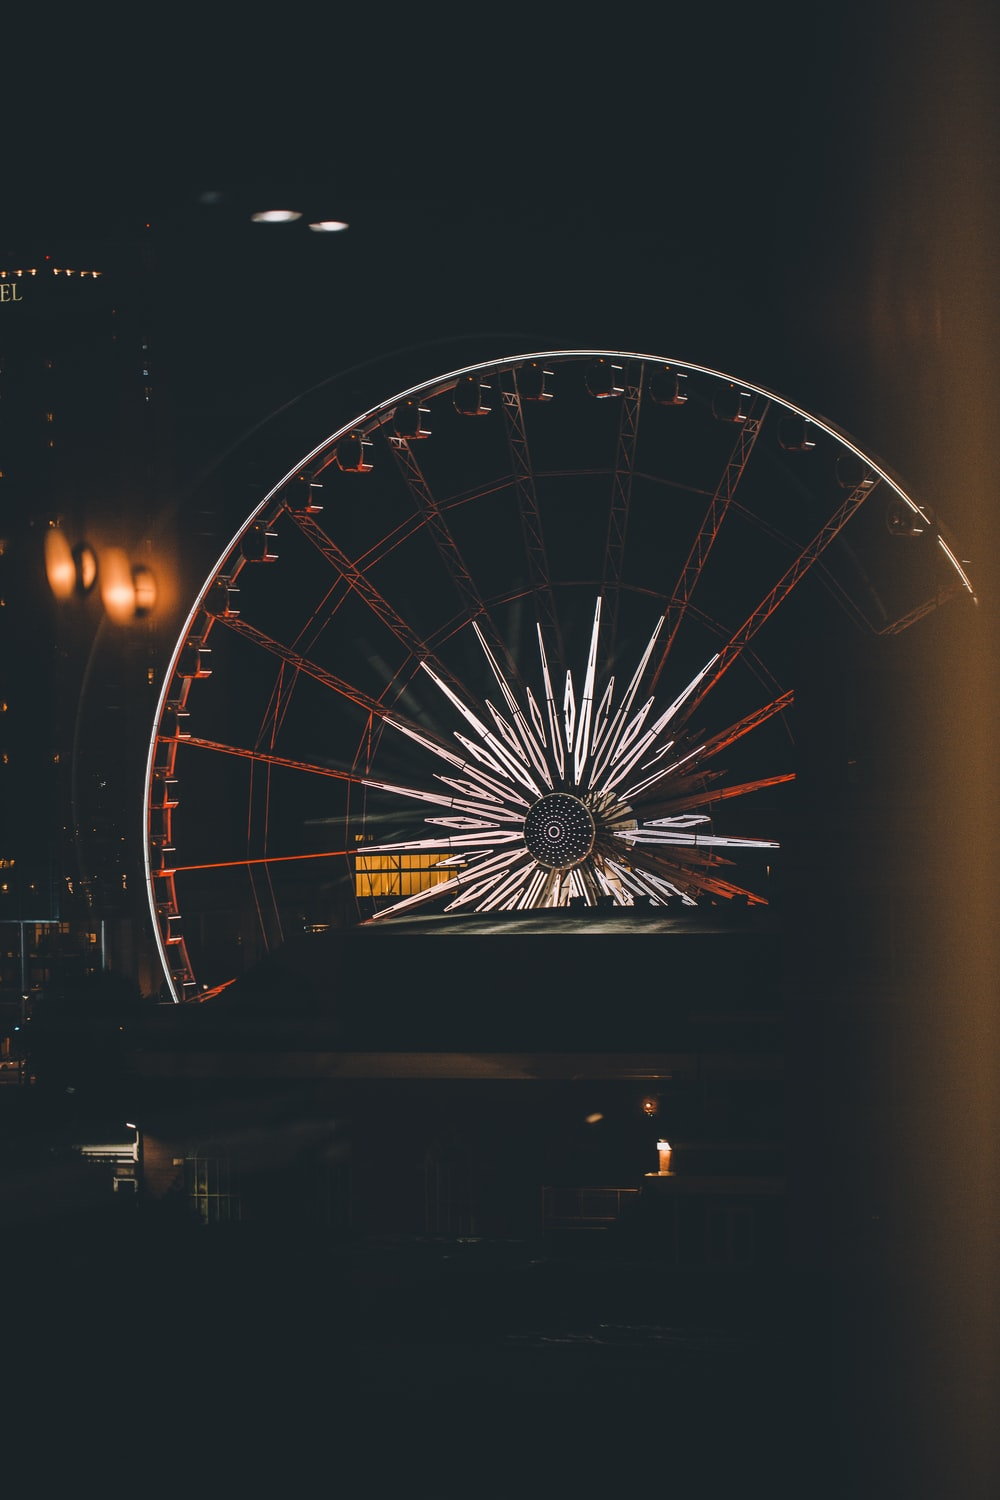 gray and black lighted Ferris wheel during nighttime